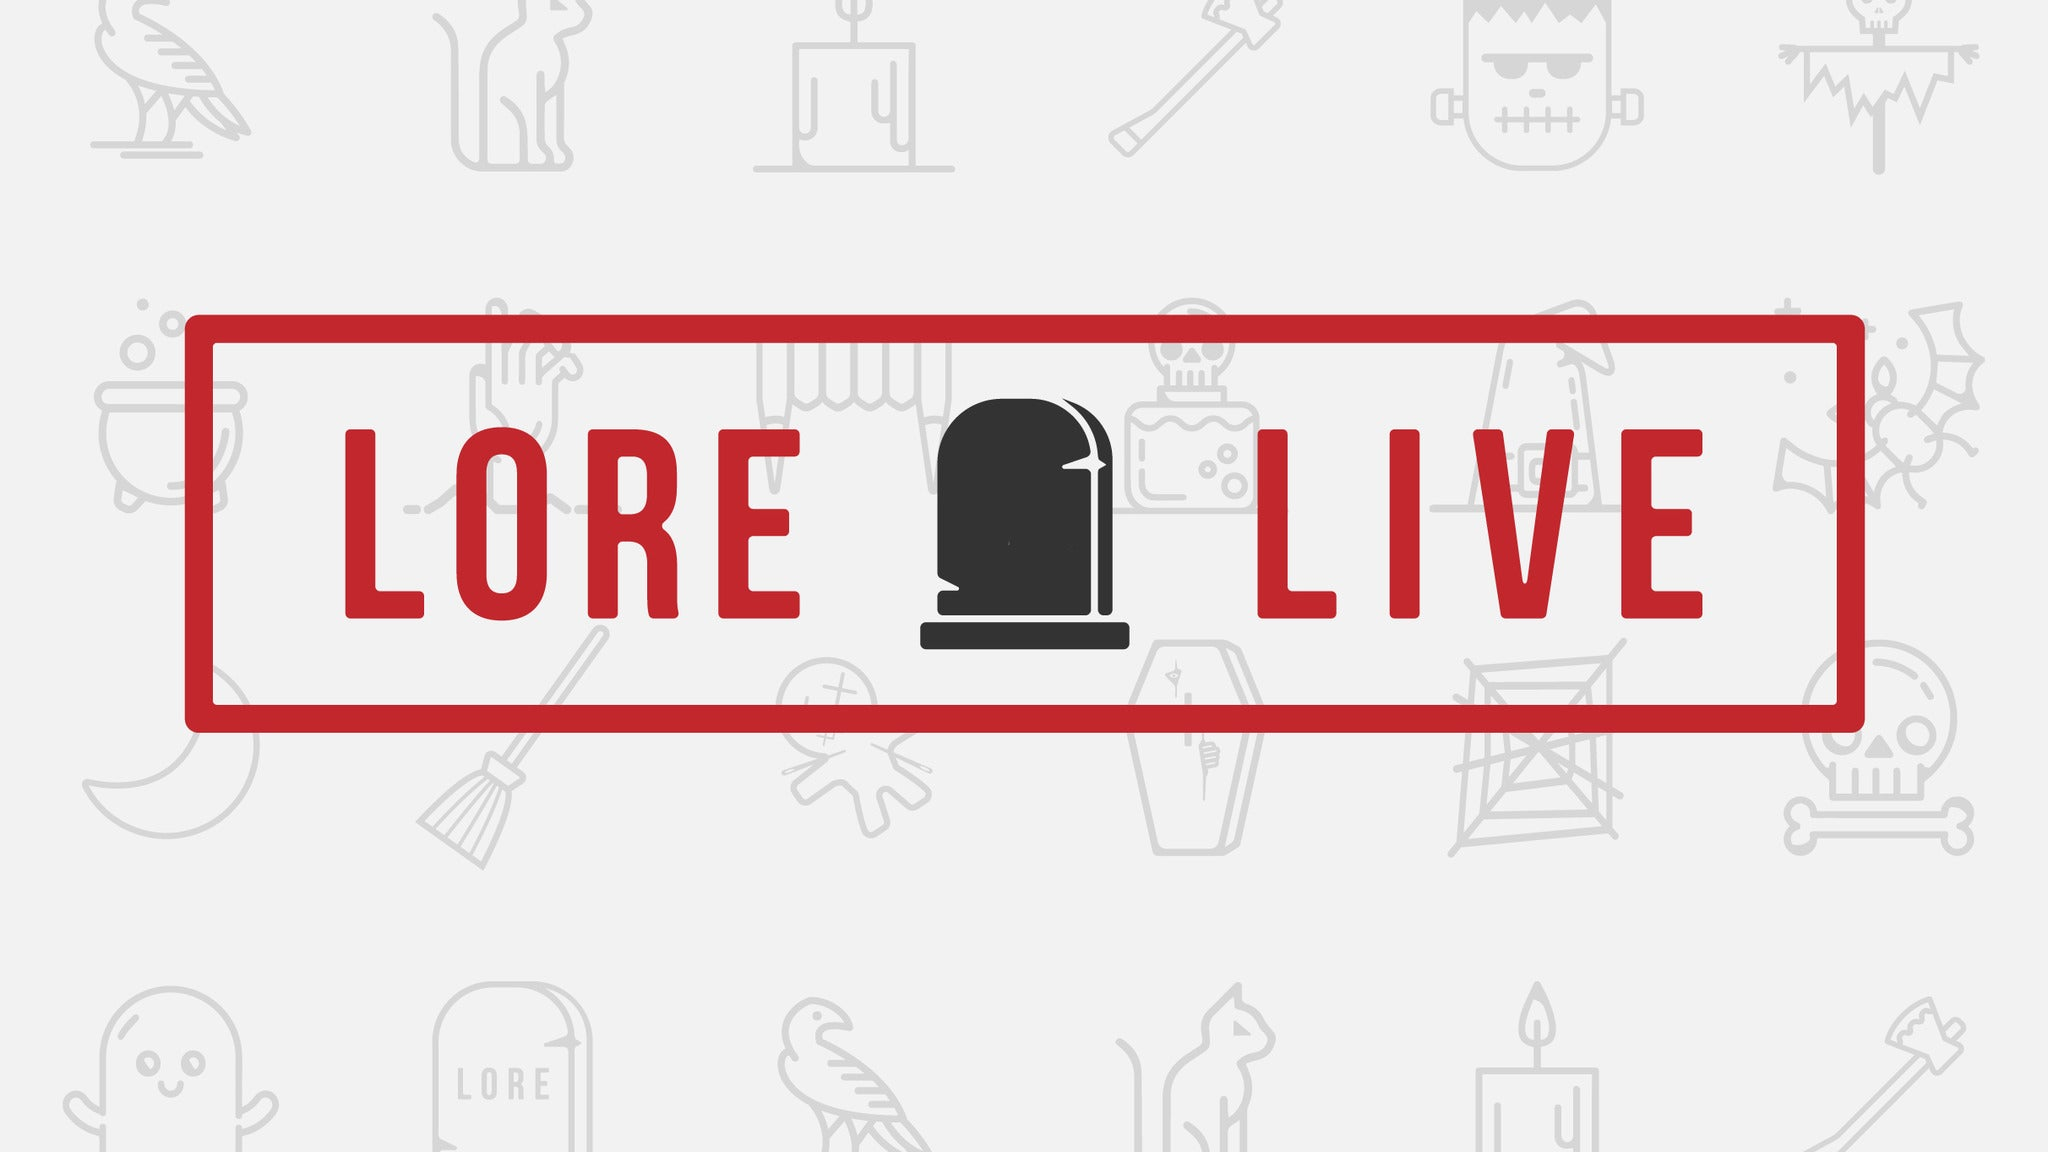 Lore Podcast Live